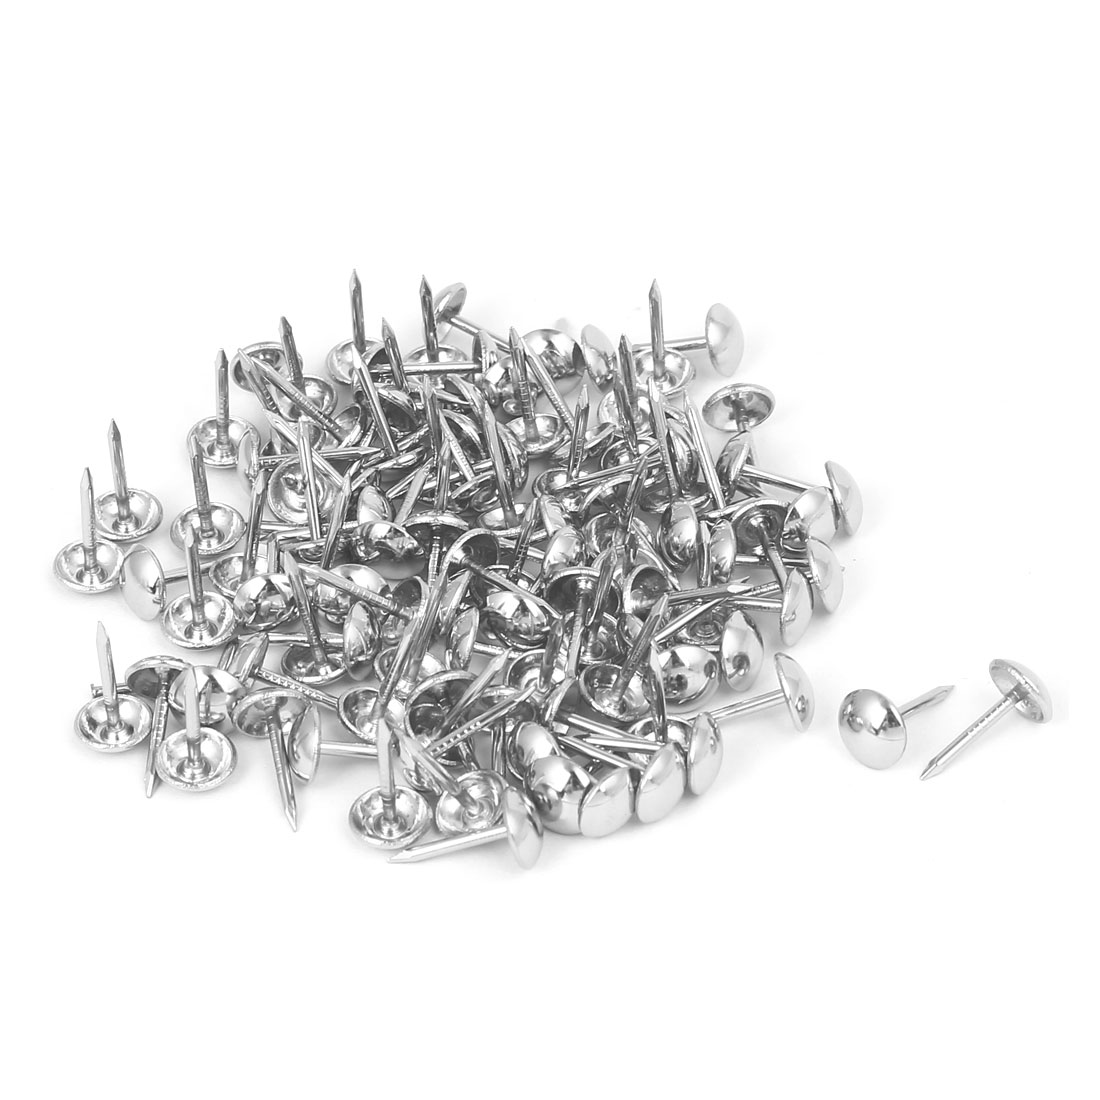 8mm Head Dia 15mm Height Upholstery Nail Thumb Tack Push Pin Silver Tone 120pcs